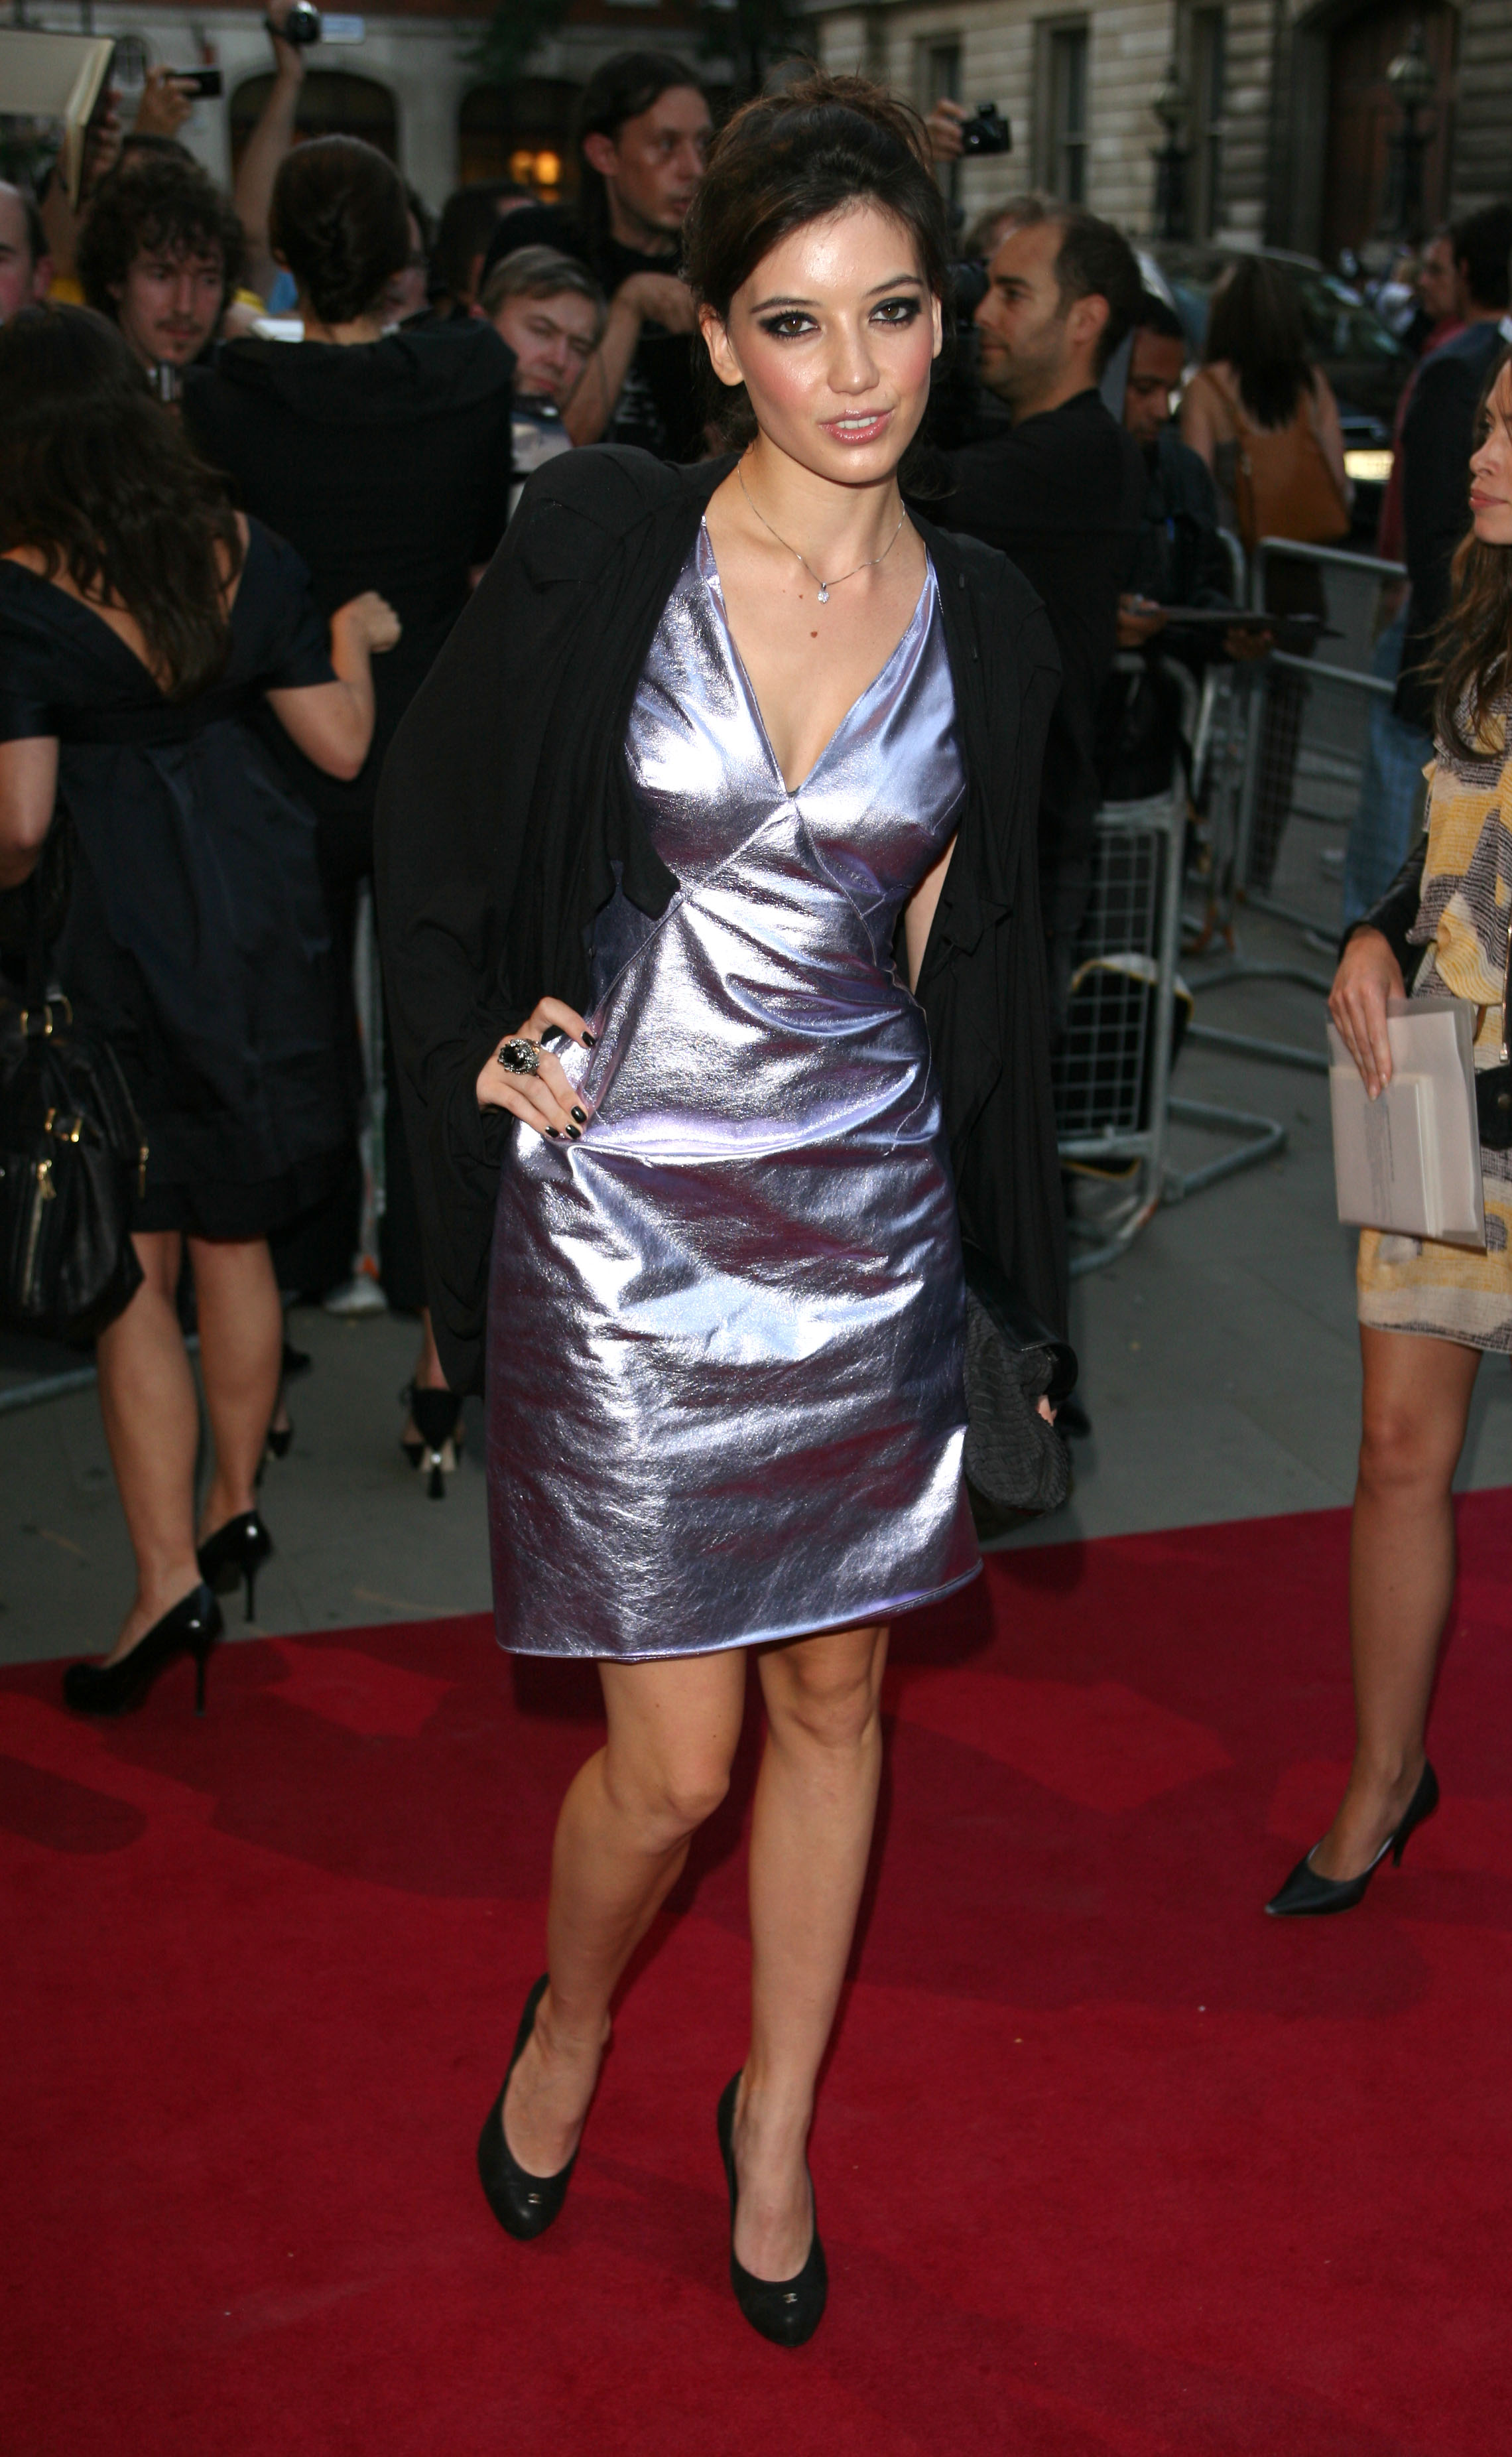 20147_Daisy_Lowe_-_GQ_Men_Of_The_Year_Awards_8th_Sept_2009_193_122_417lo.jpg